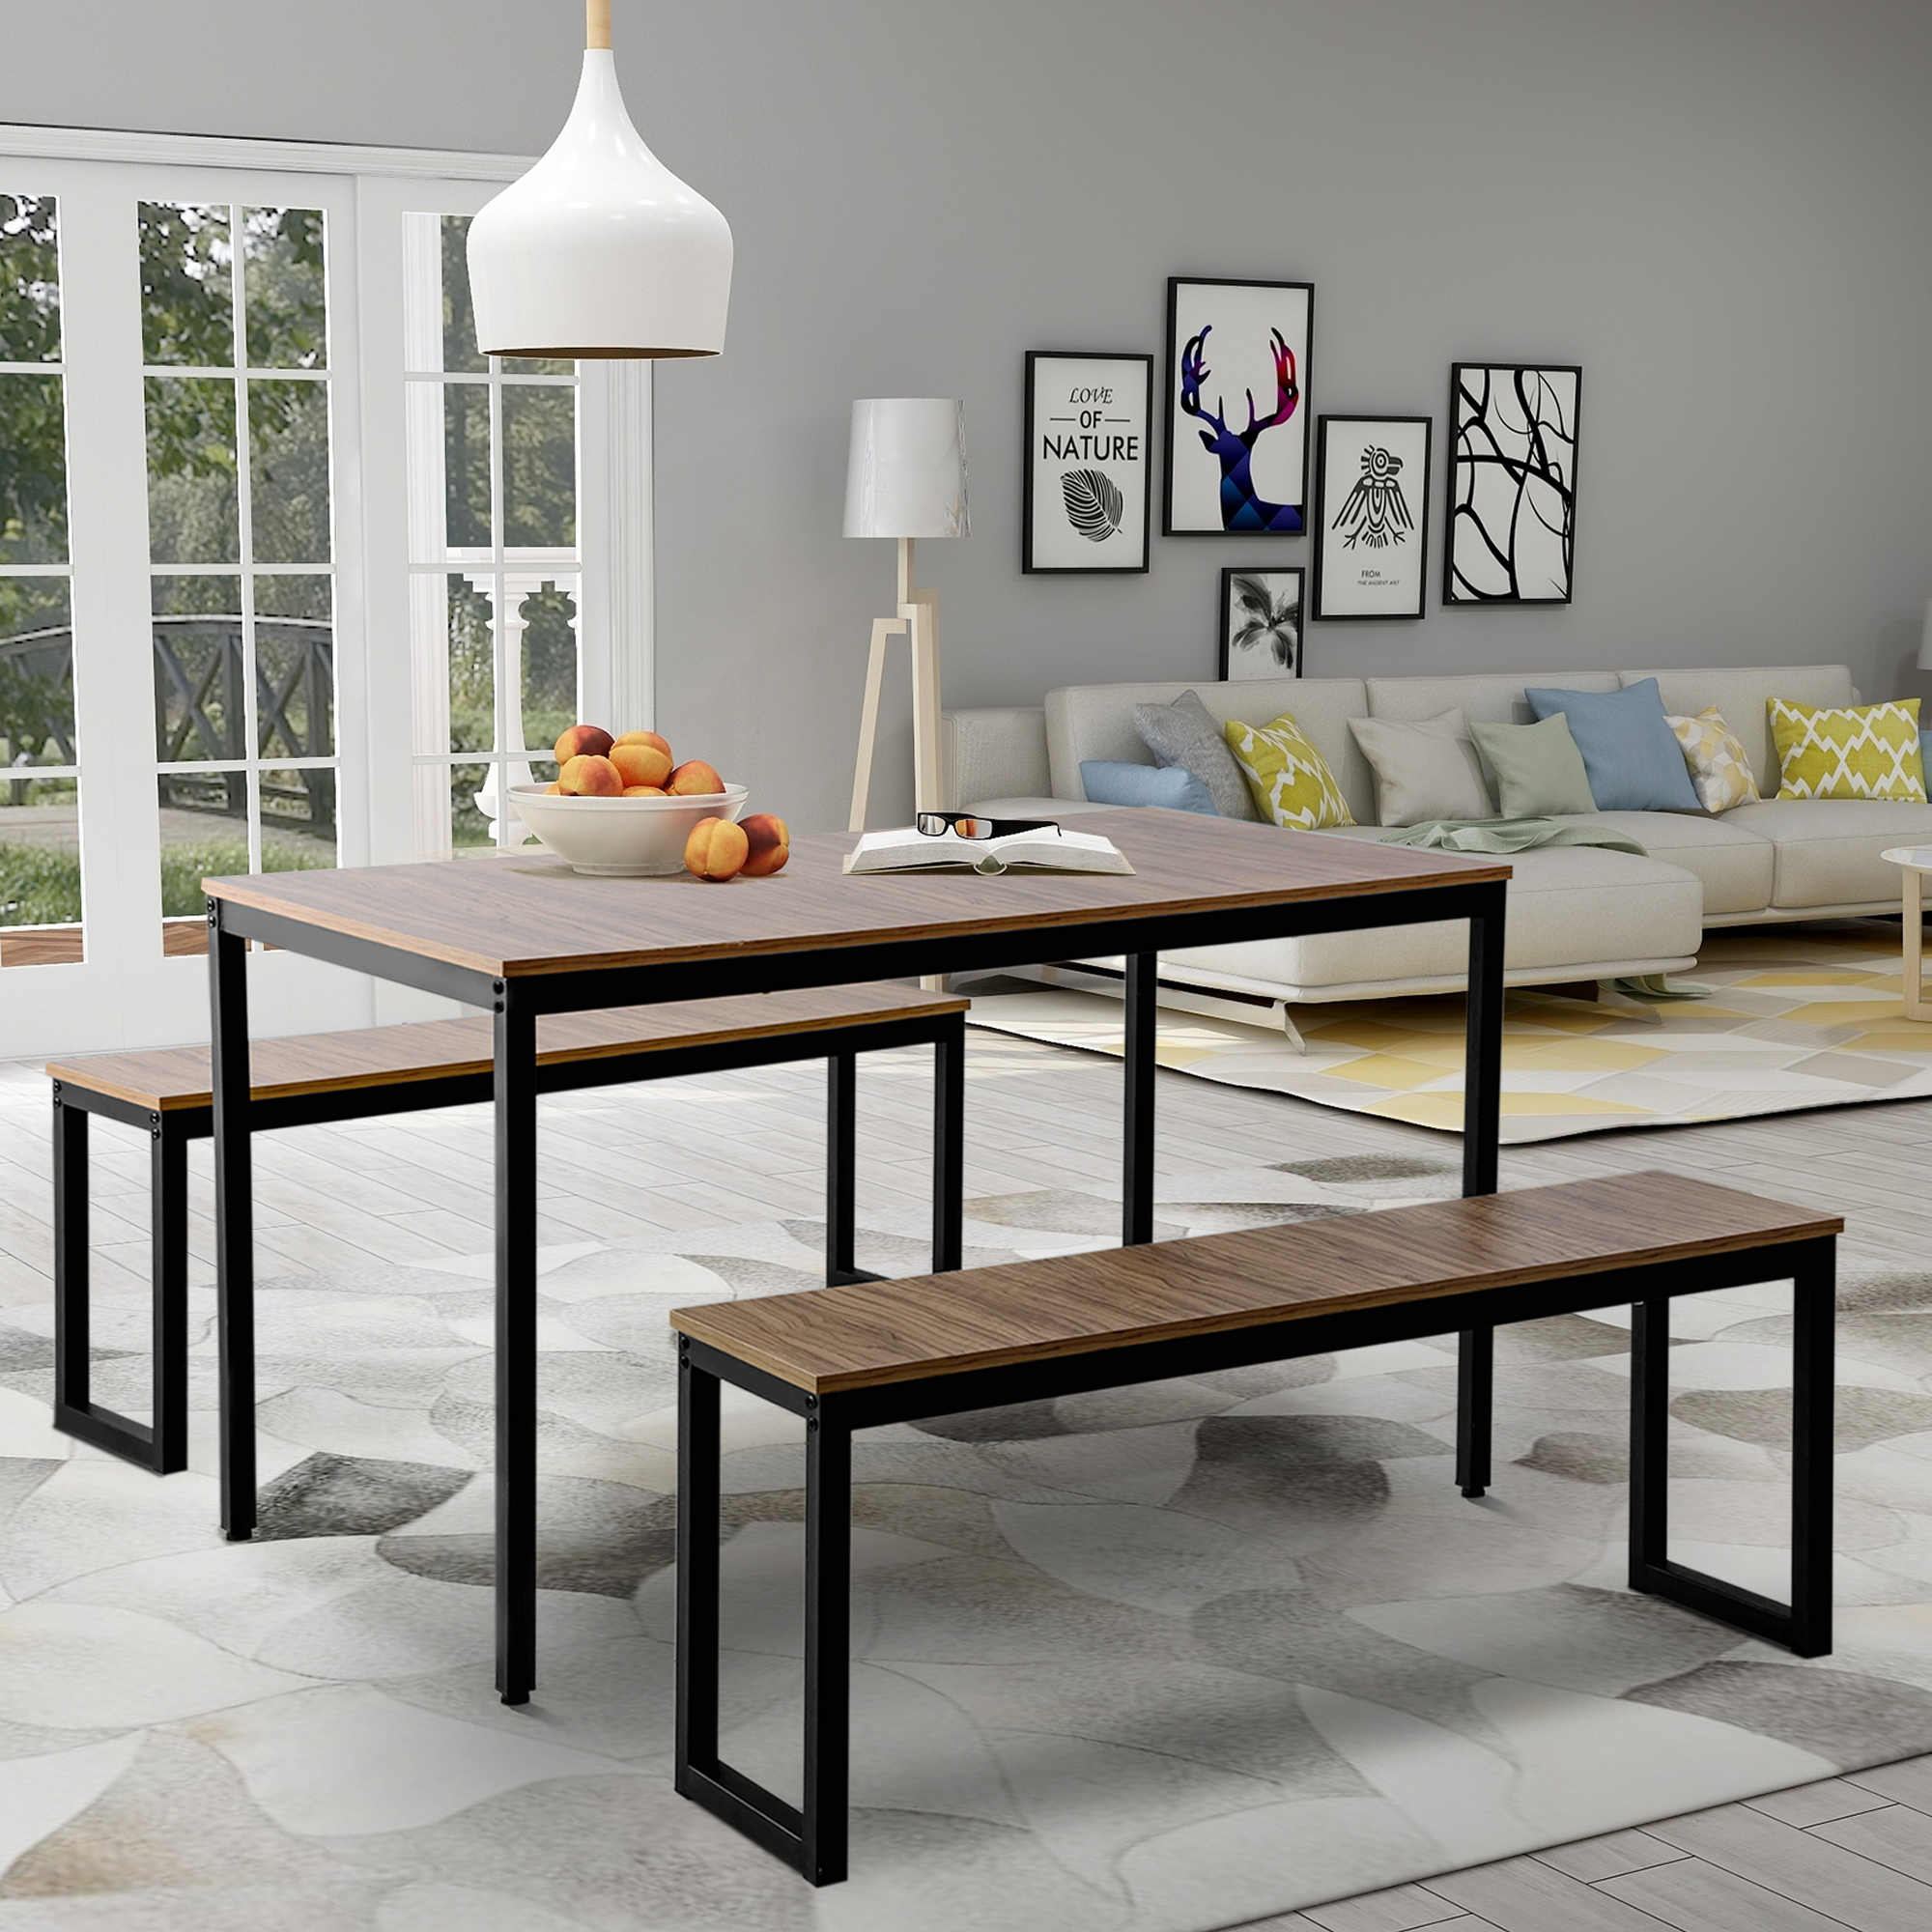 ModernLuxe 3 Piece Dining Set, Kitchen Table with Benches